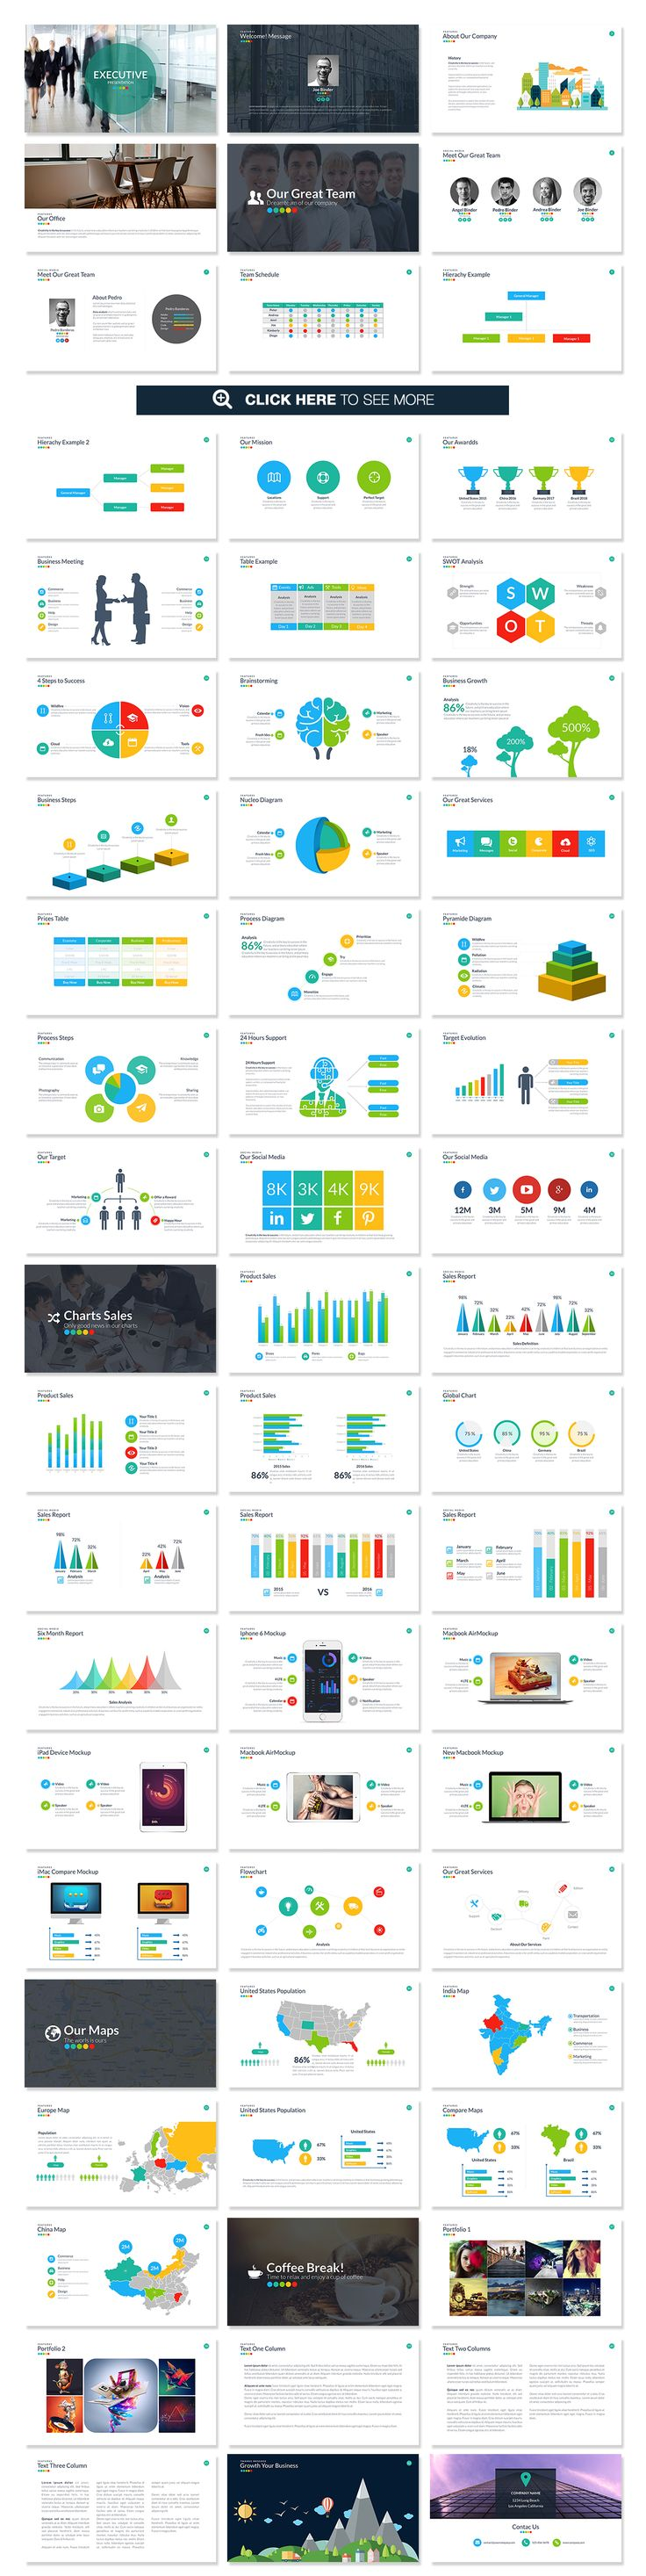 Executive Powerpoint Template by Slidedizer on Creative Market